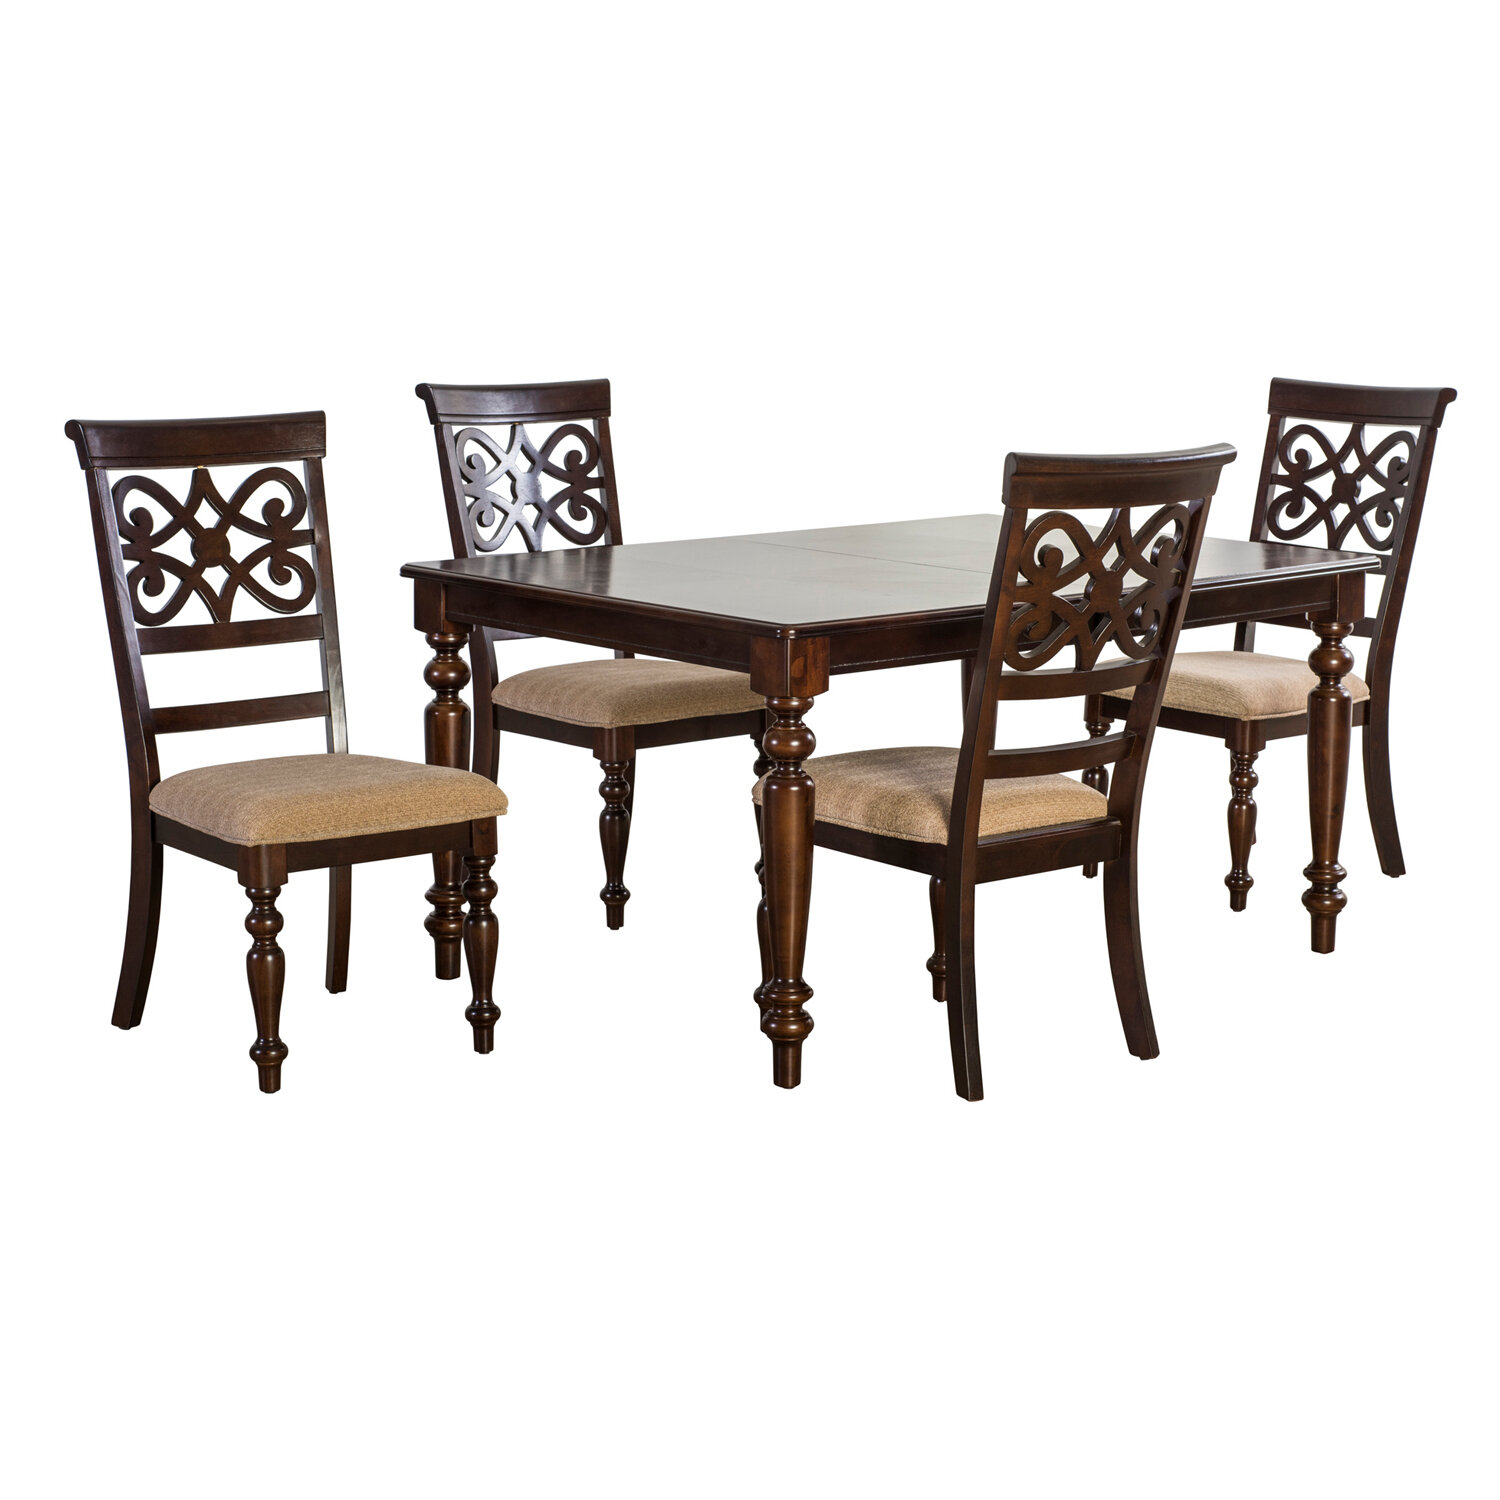 Laconia 5 Piece Extendable Dining Set Regarding 2017 Laconia 7 Pieces Solid Wood Dining Sets (Set Of 7) (View 8 of 20)